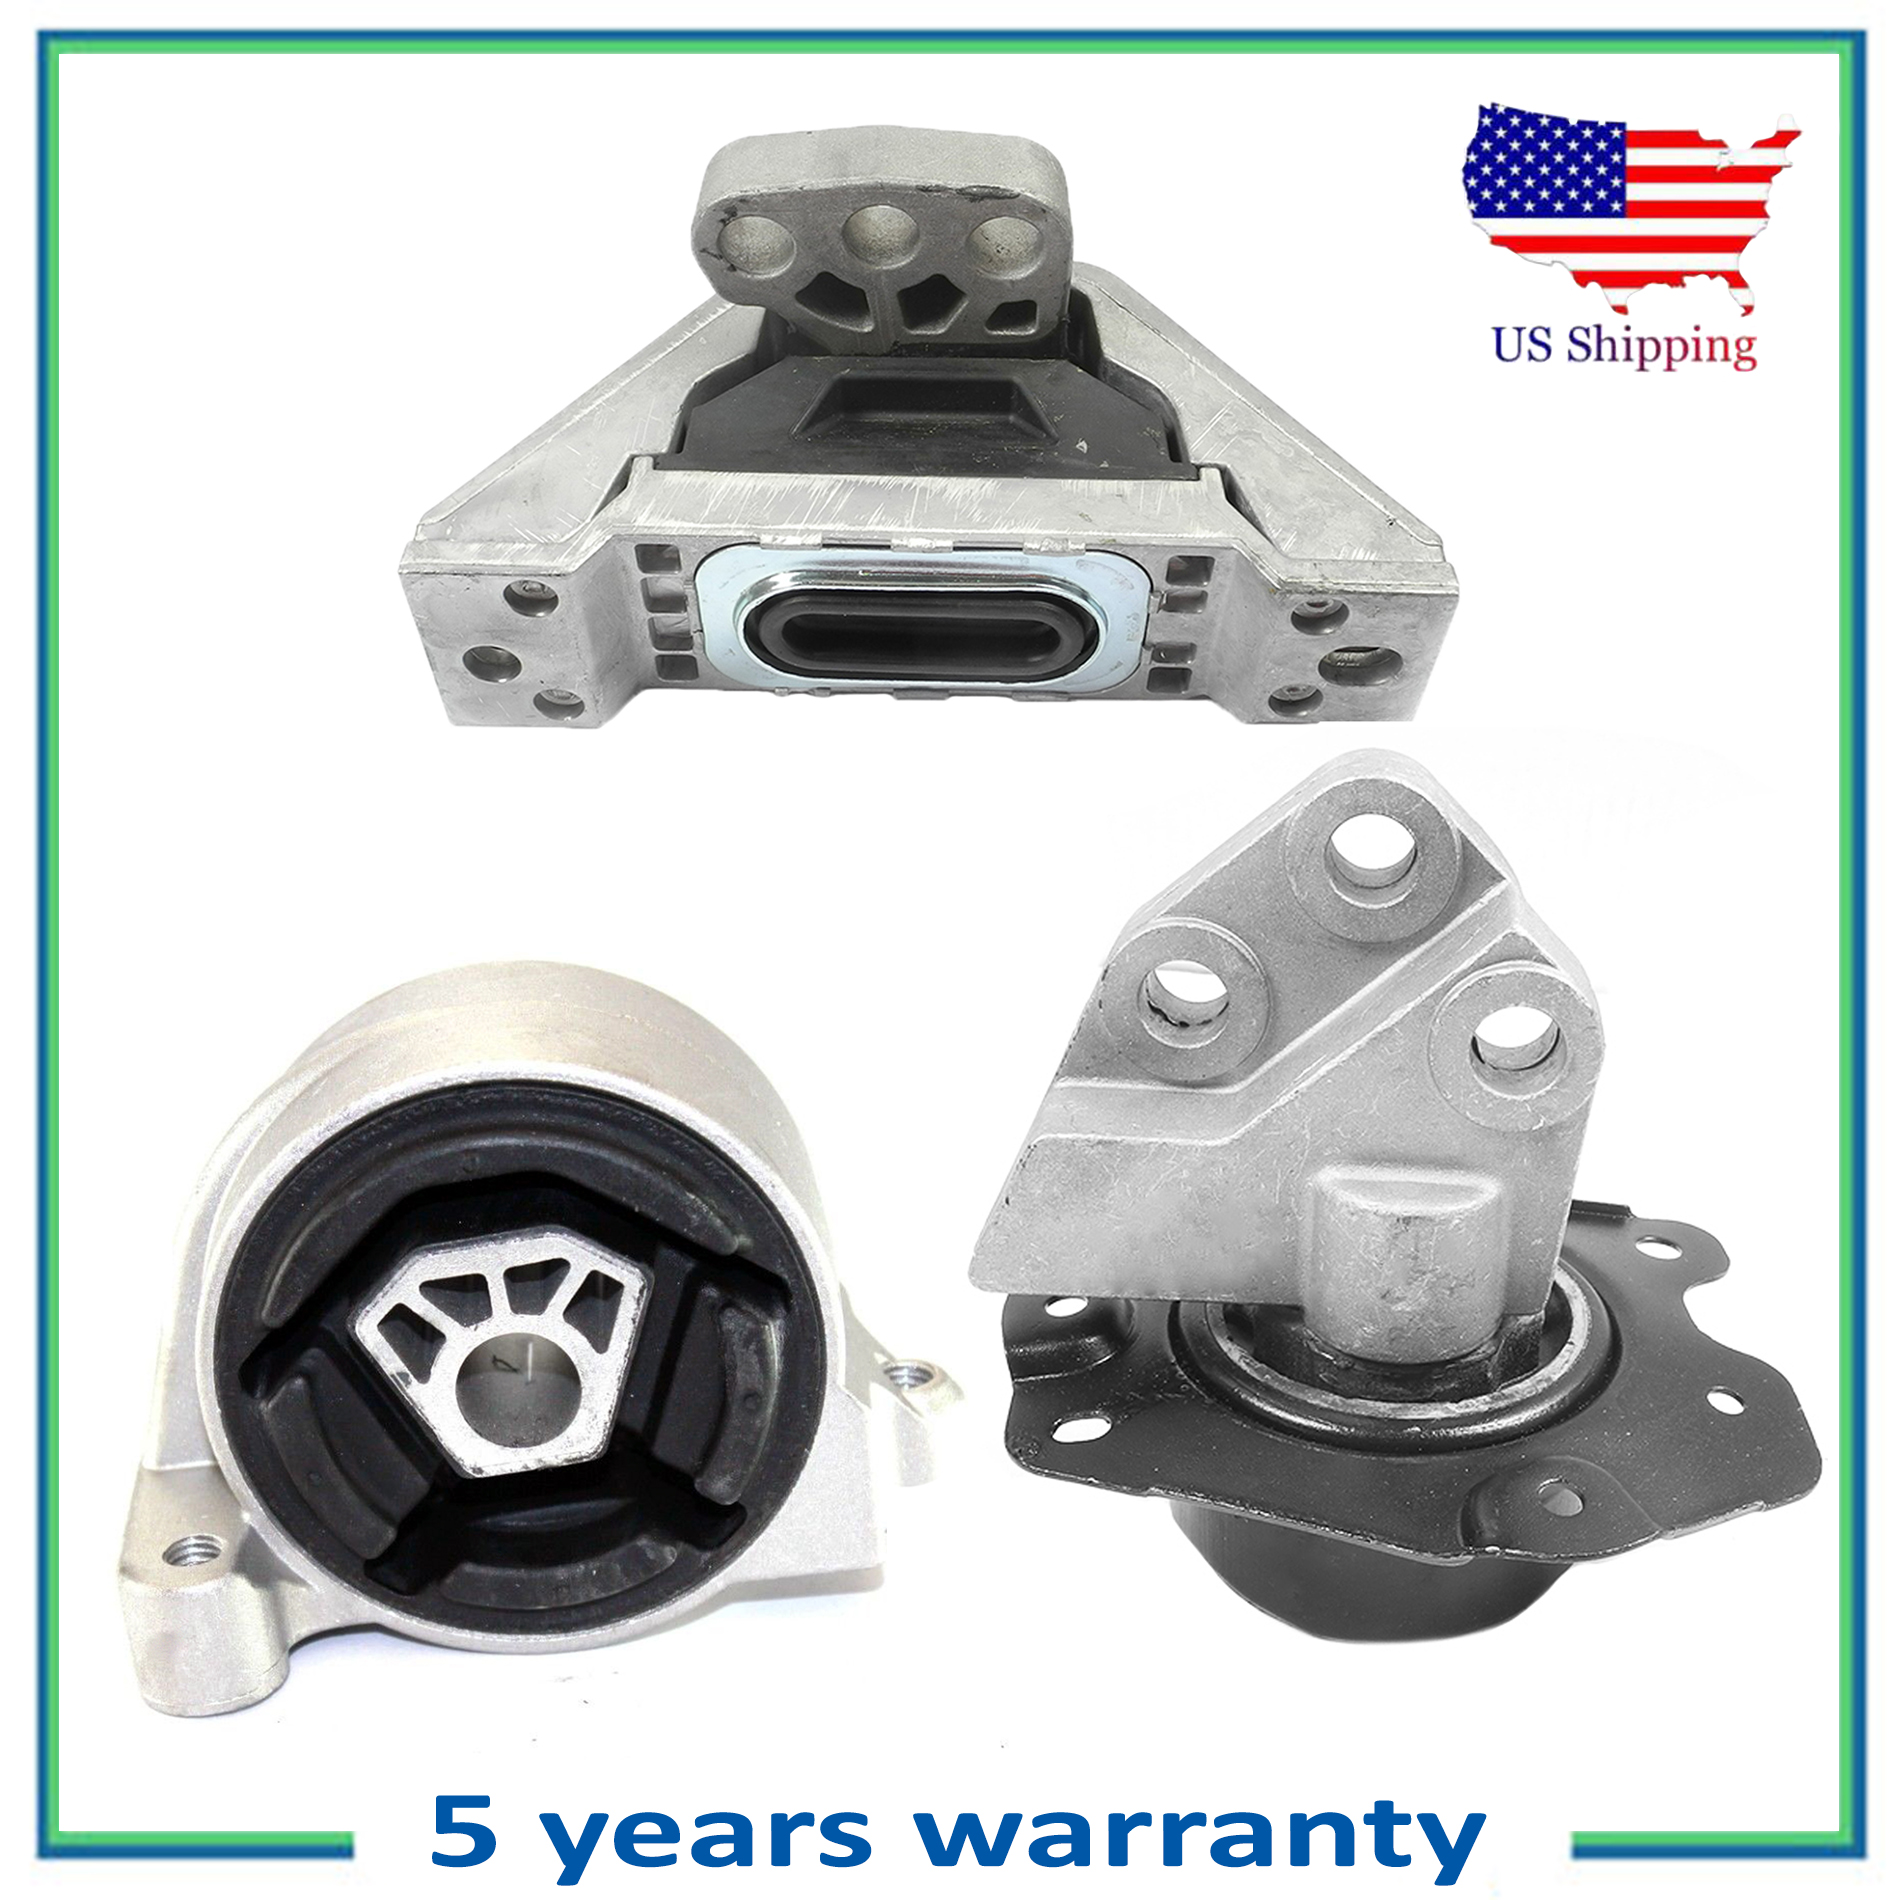 Engine Motor /& Trans Mount 3PCS Auto For 2005-2006 Chevrolet Equinox LT 3.4L FWD